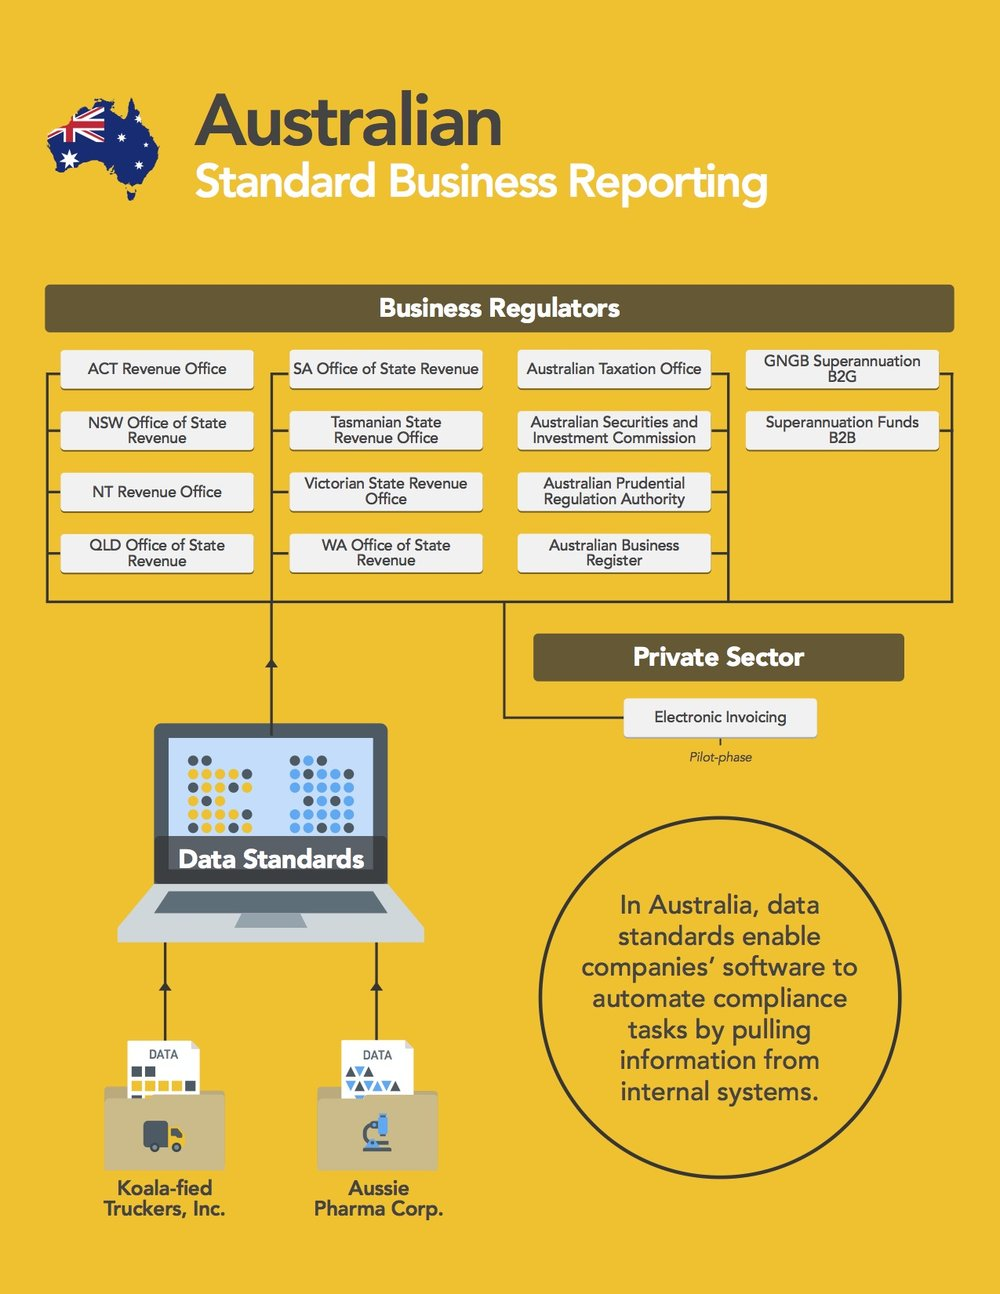 Standard Business Reporting 2017 Data Foundation